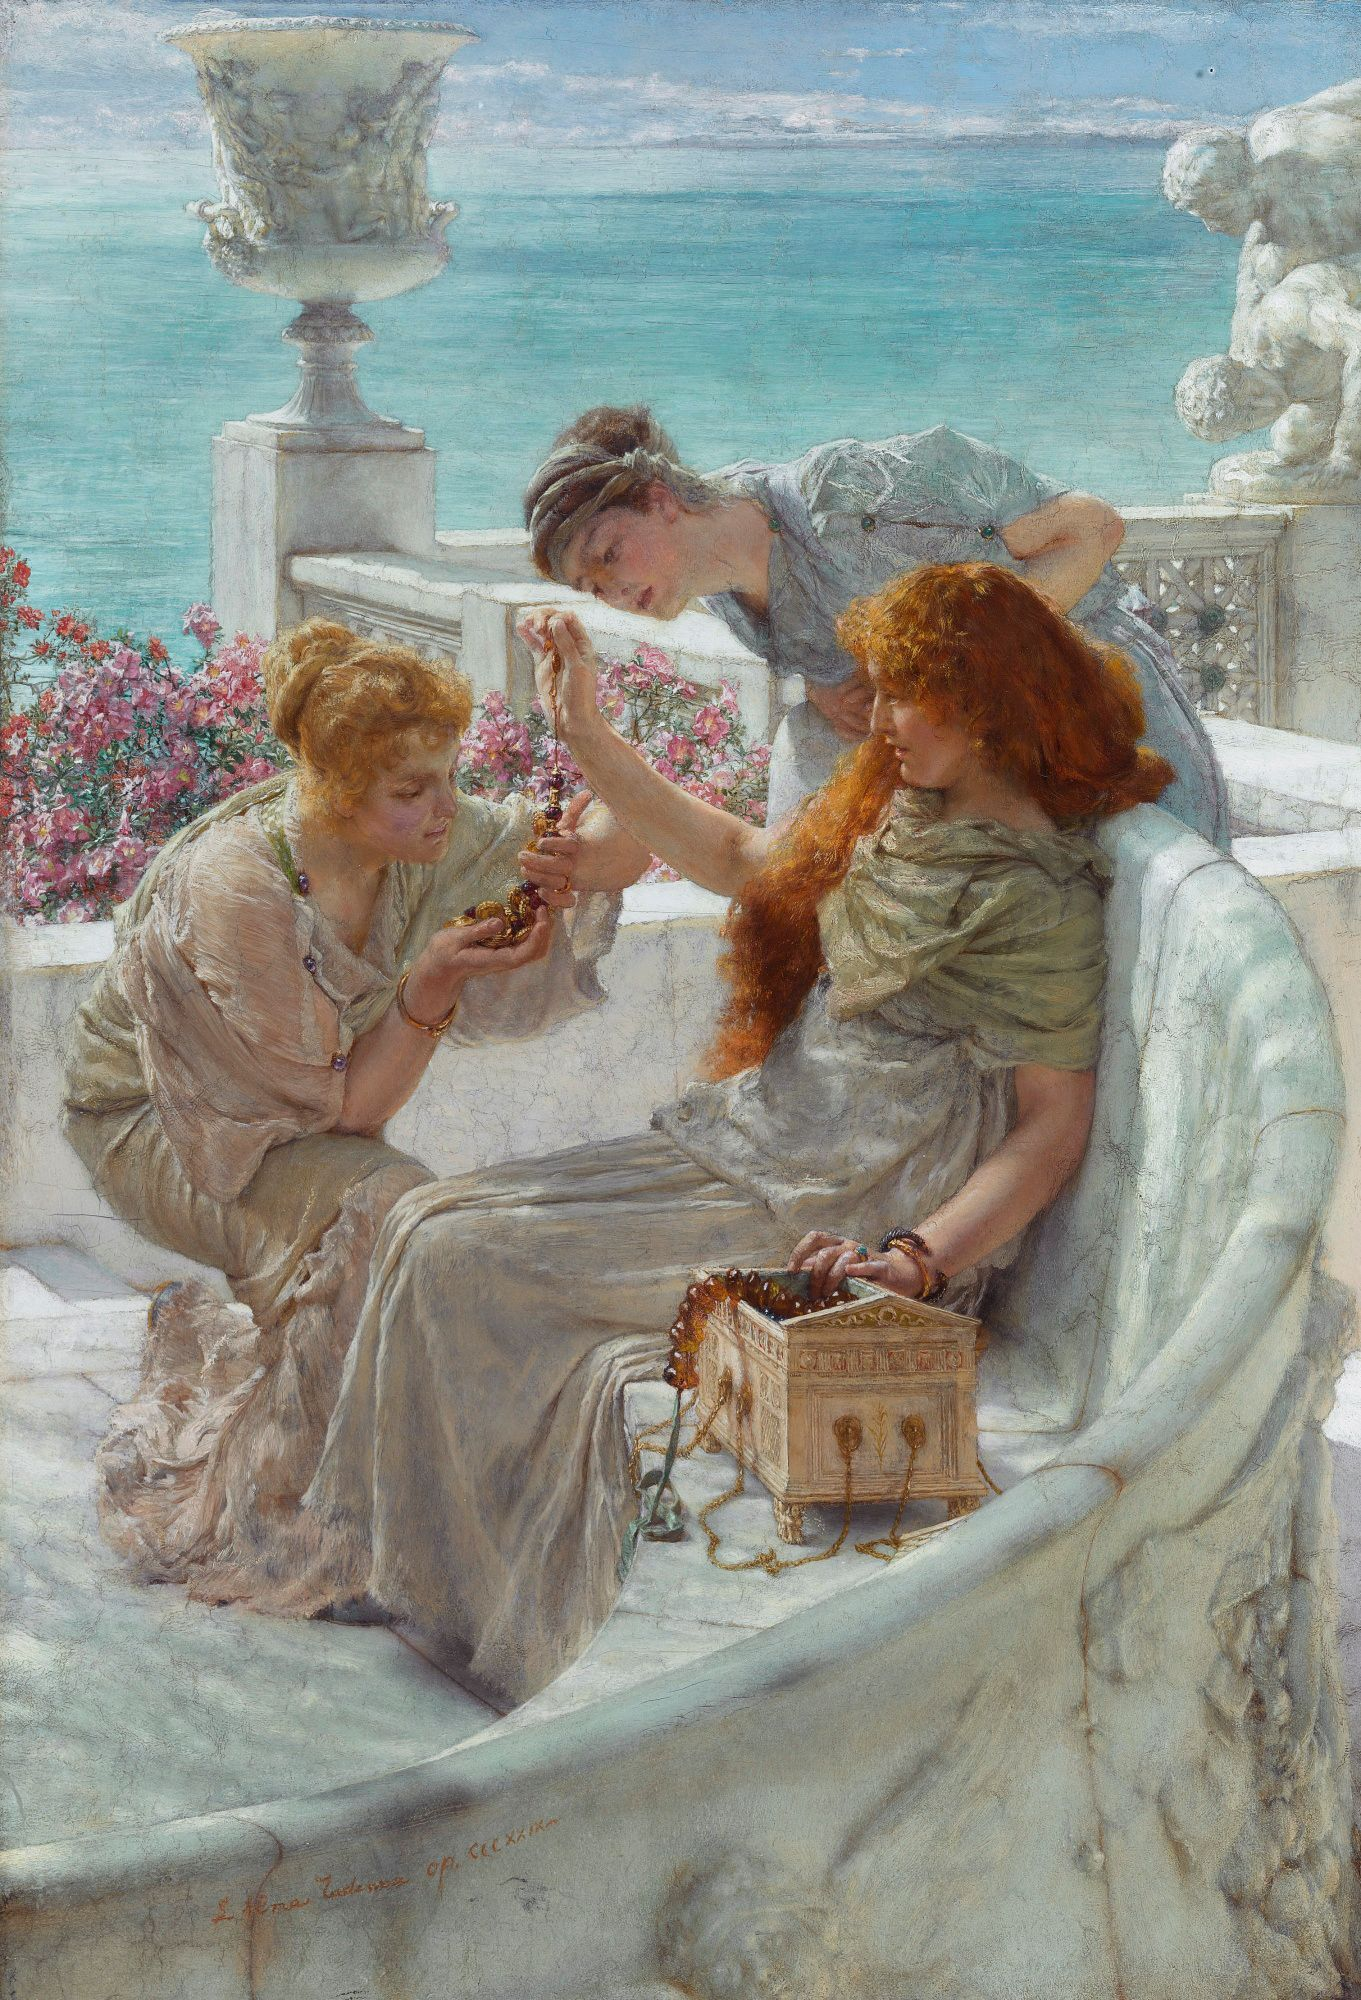 Fortune's Favorite by Lawrence Alma, 1895 (Showing off possibly amber or ambergris beads.)